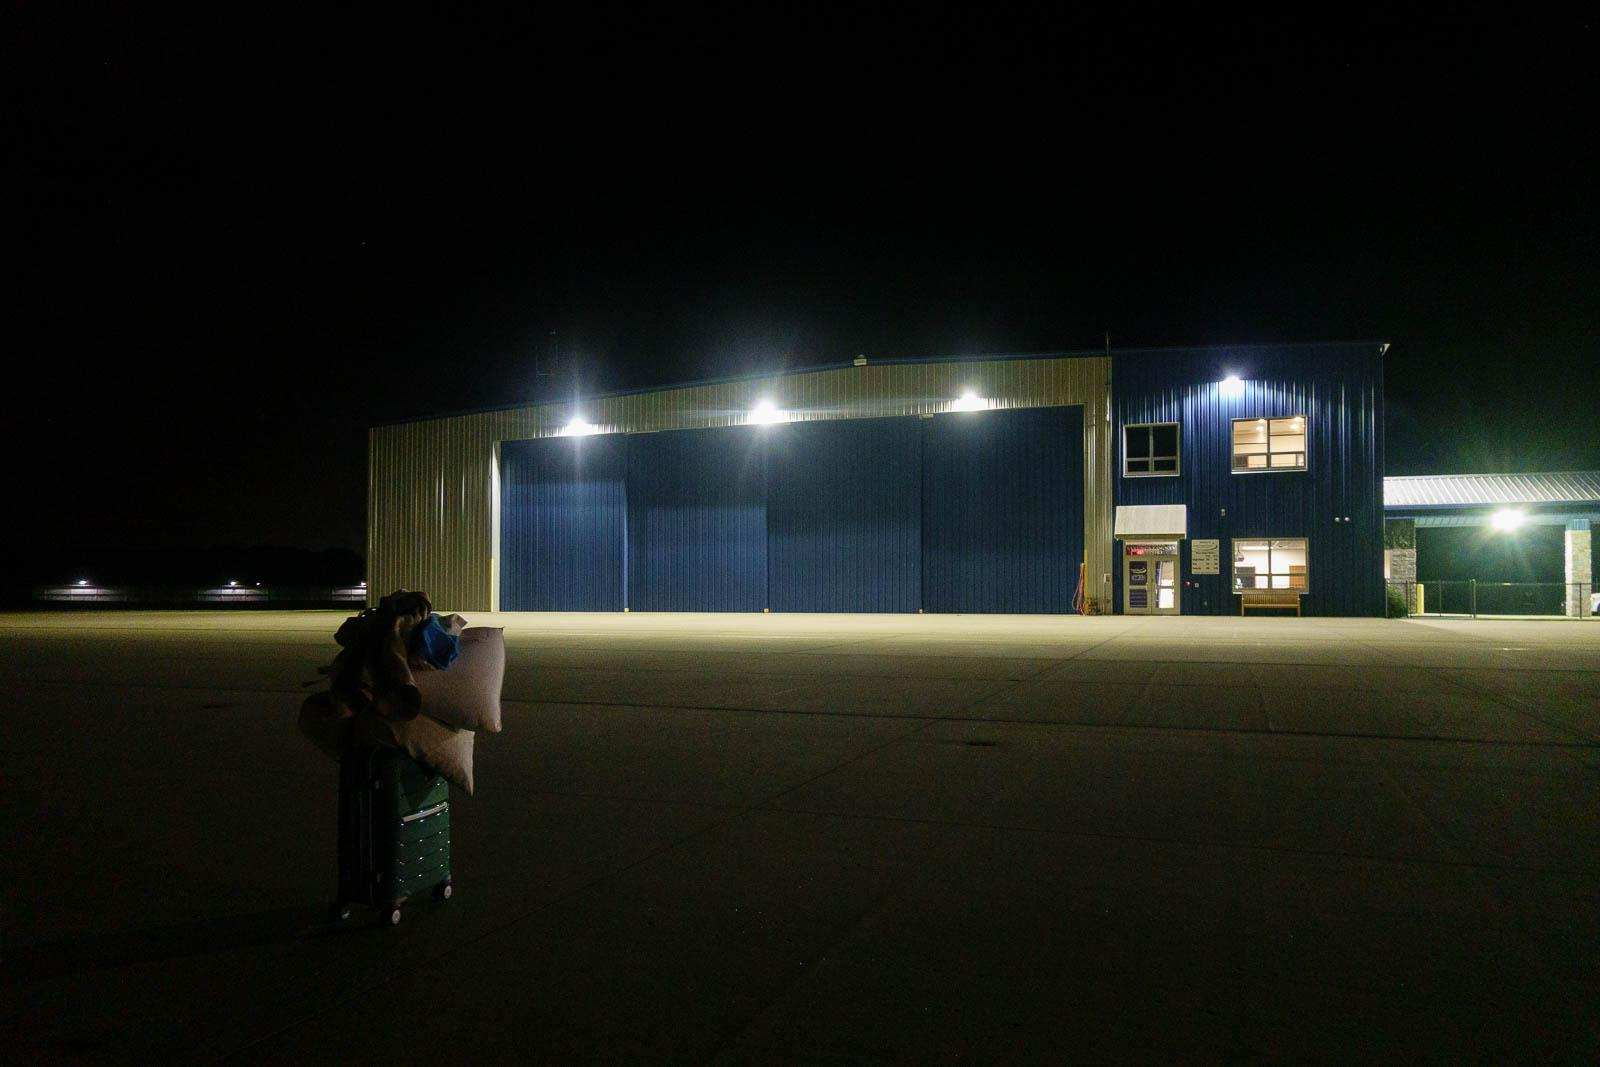 This is FBO Hobo life, Tri-State Steuben County Airport